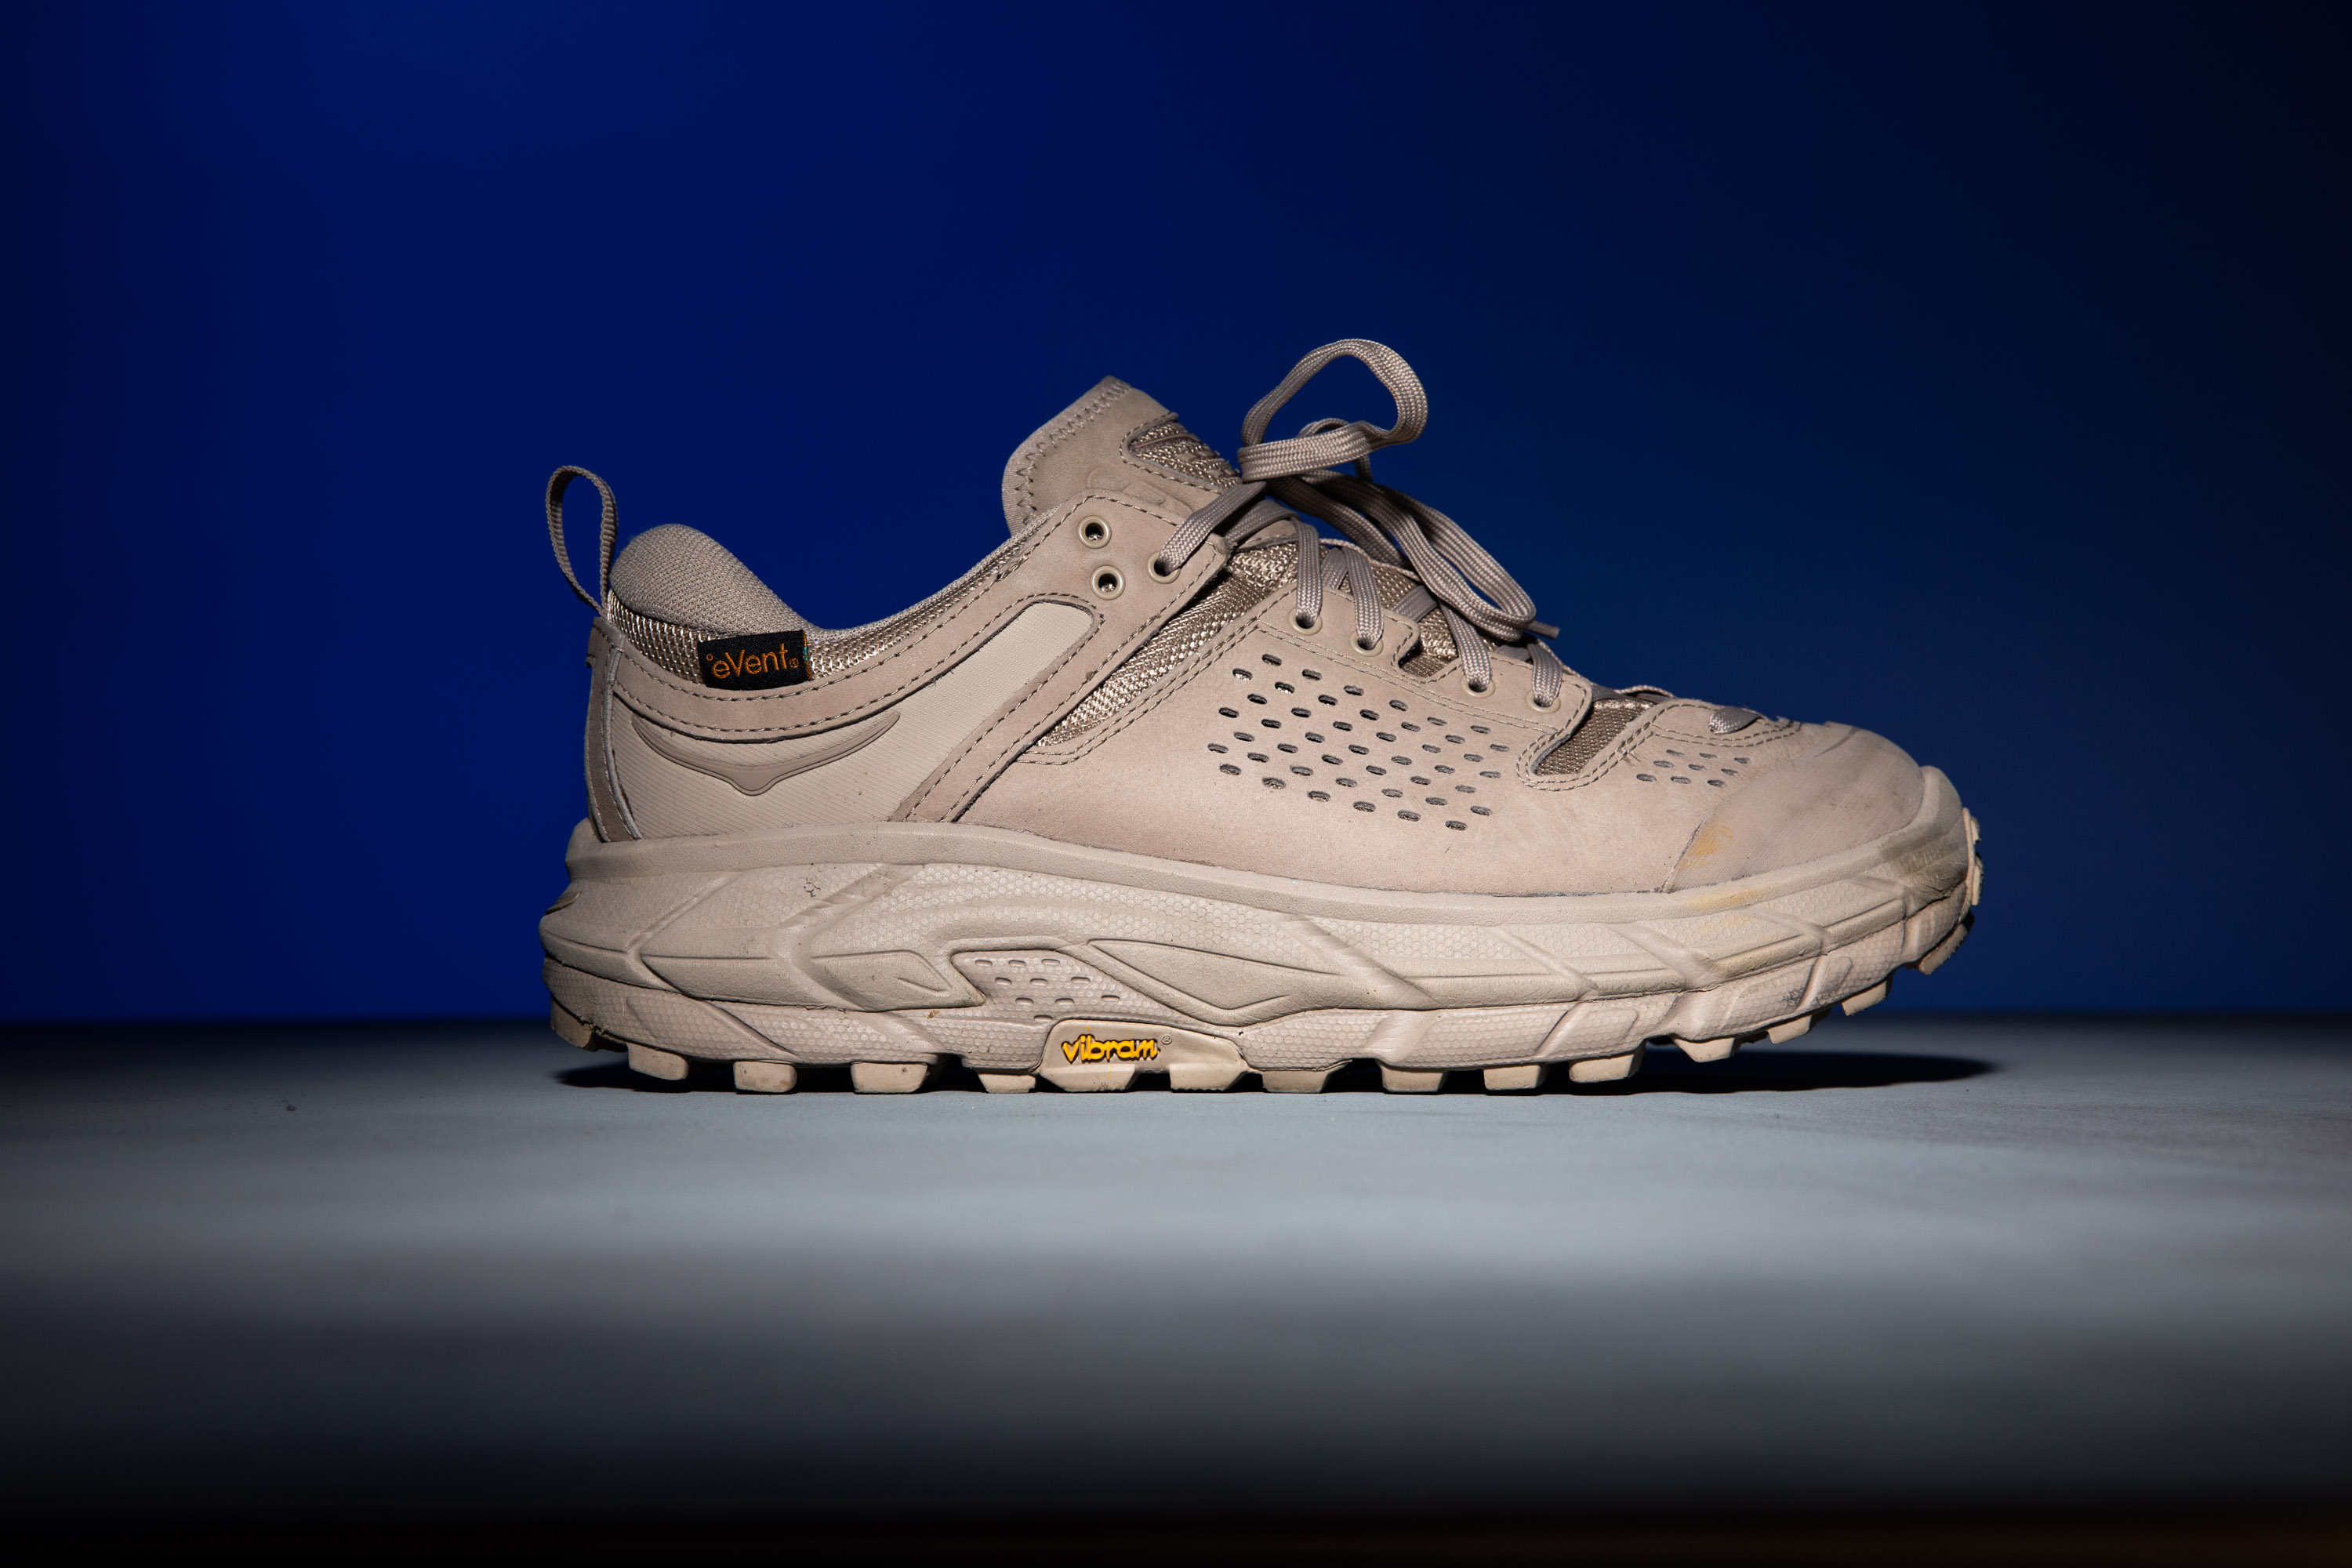 sale retailer a63b7 eb550 EG is a fan favorite in the Highsnobiety NY office, and their latest  collaborative sneakers with HOKA ONE ONE went off like a bang.